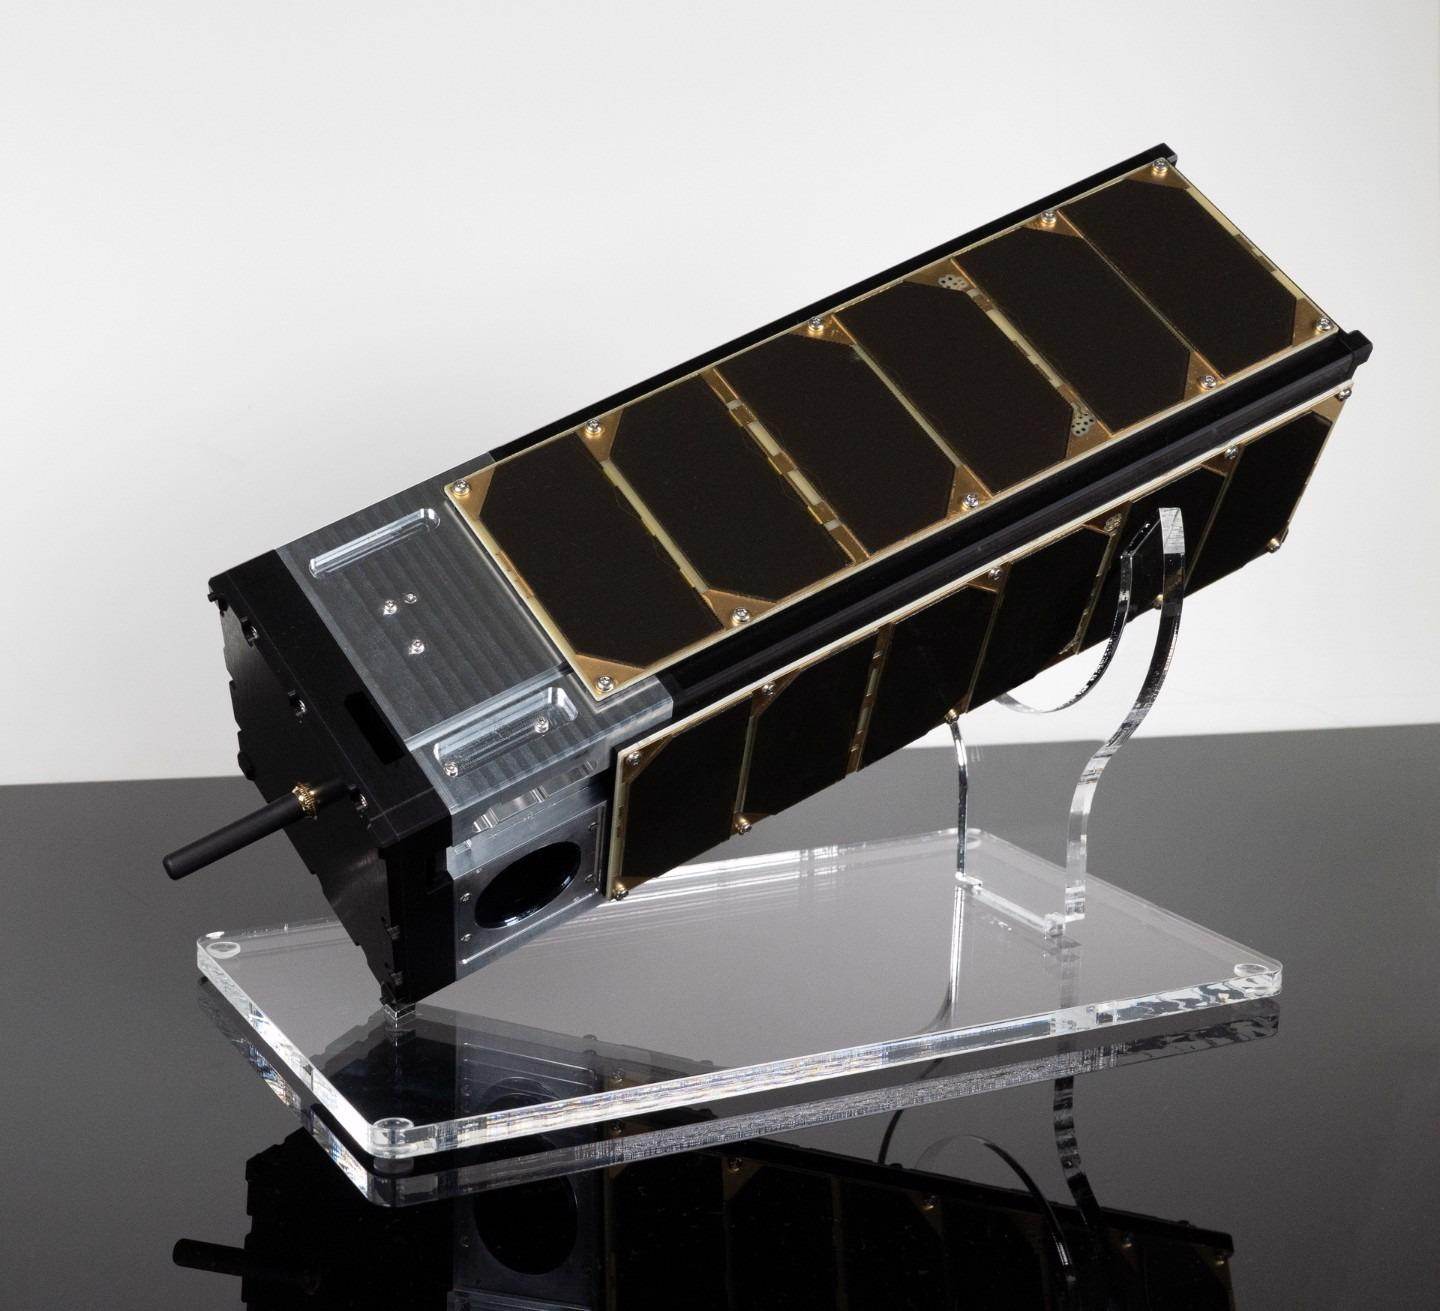 Researchers Test Q and W Band Signals in Low Earth Orbit for Future Communications.